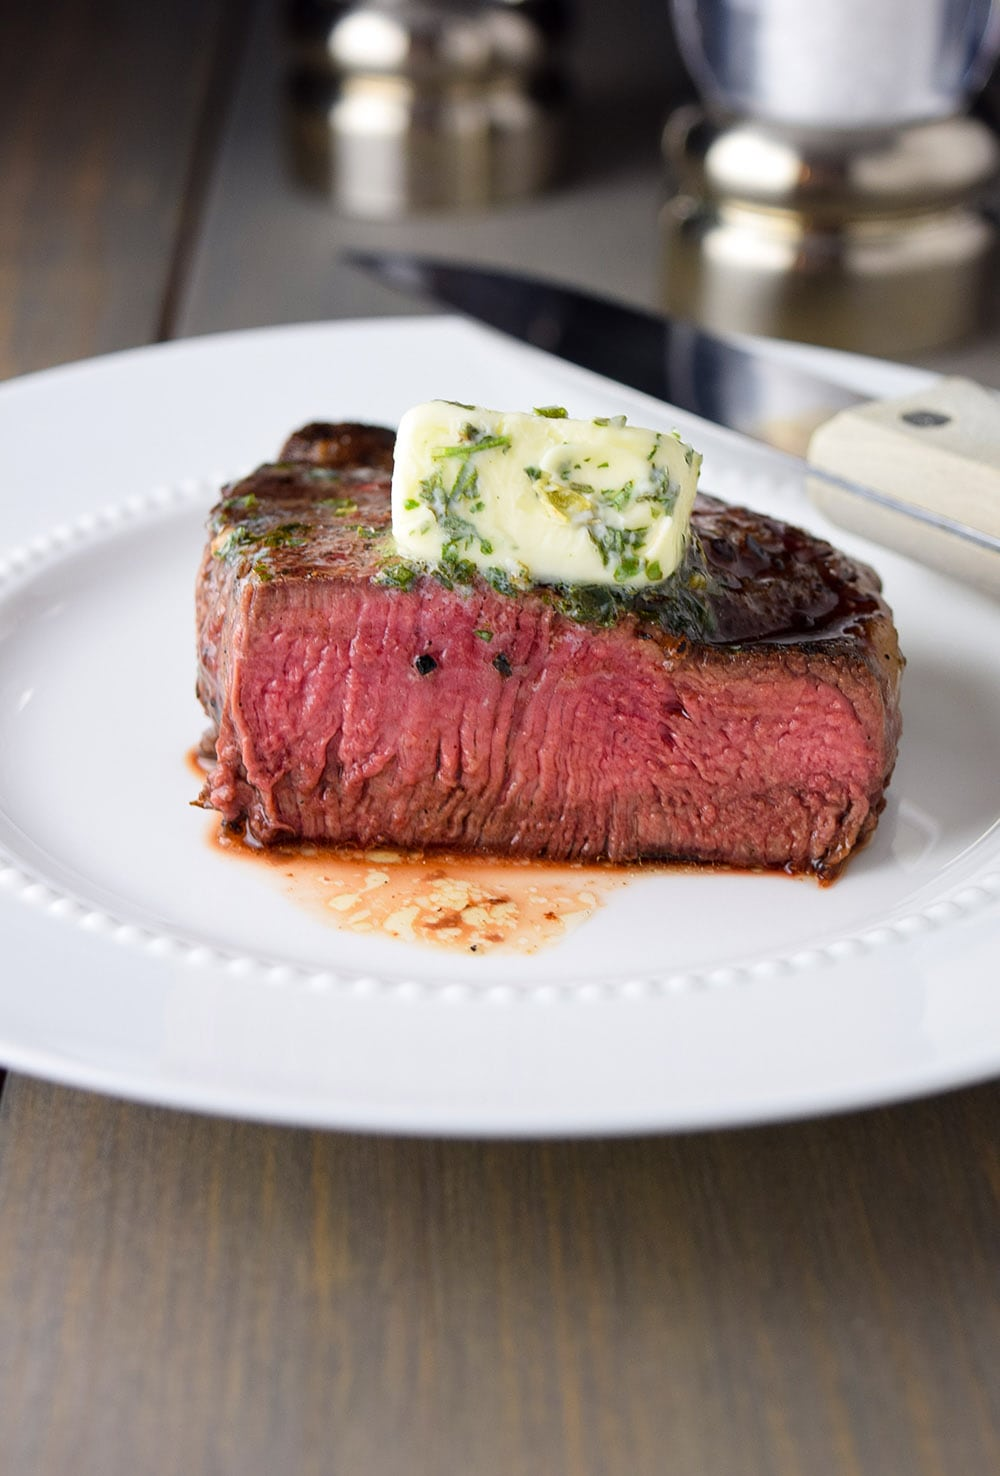 Medium rare pan-seared filet mignon recipe with garlic & herb butter